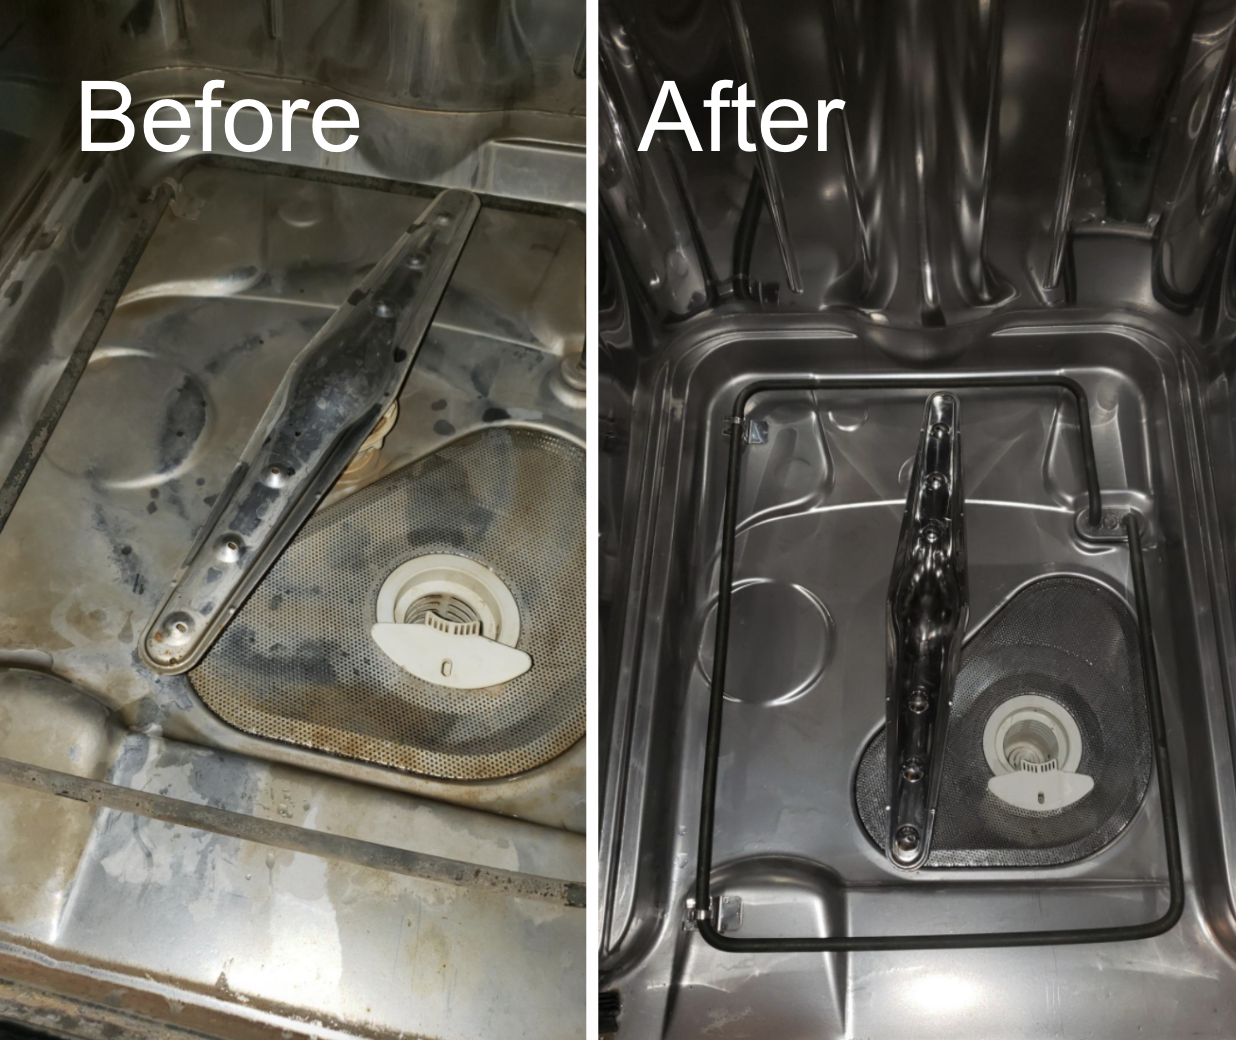 A customer review before and after photo of their dishwasher